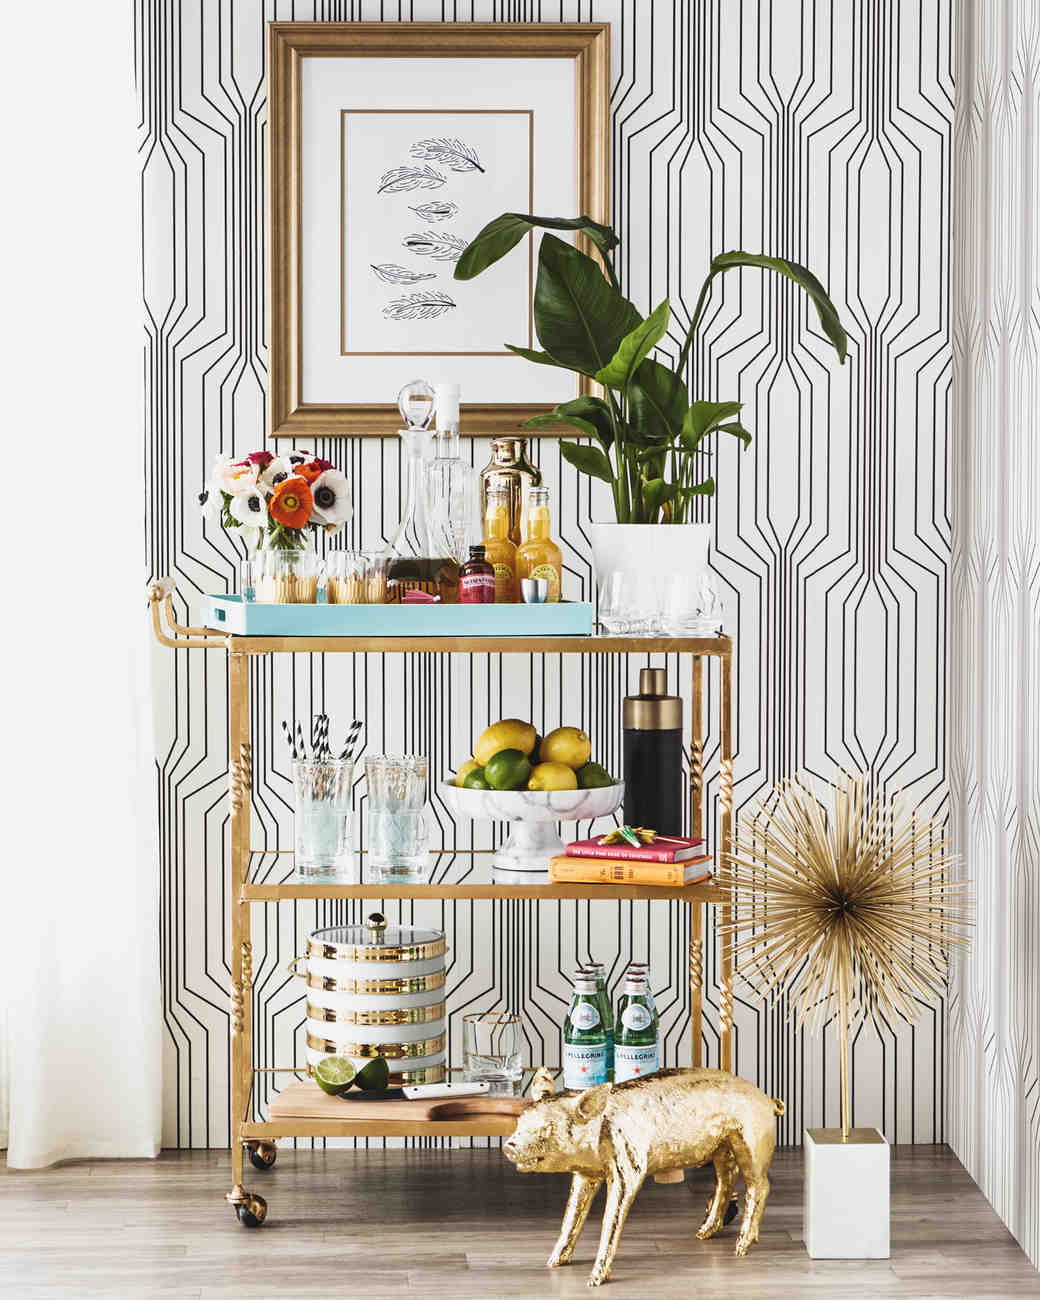 darcys-diary-jonathan-adler-bar-cart-amazon-registry-0516.jpg